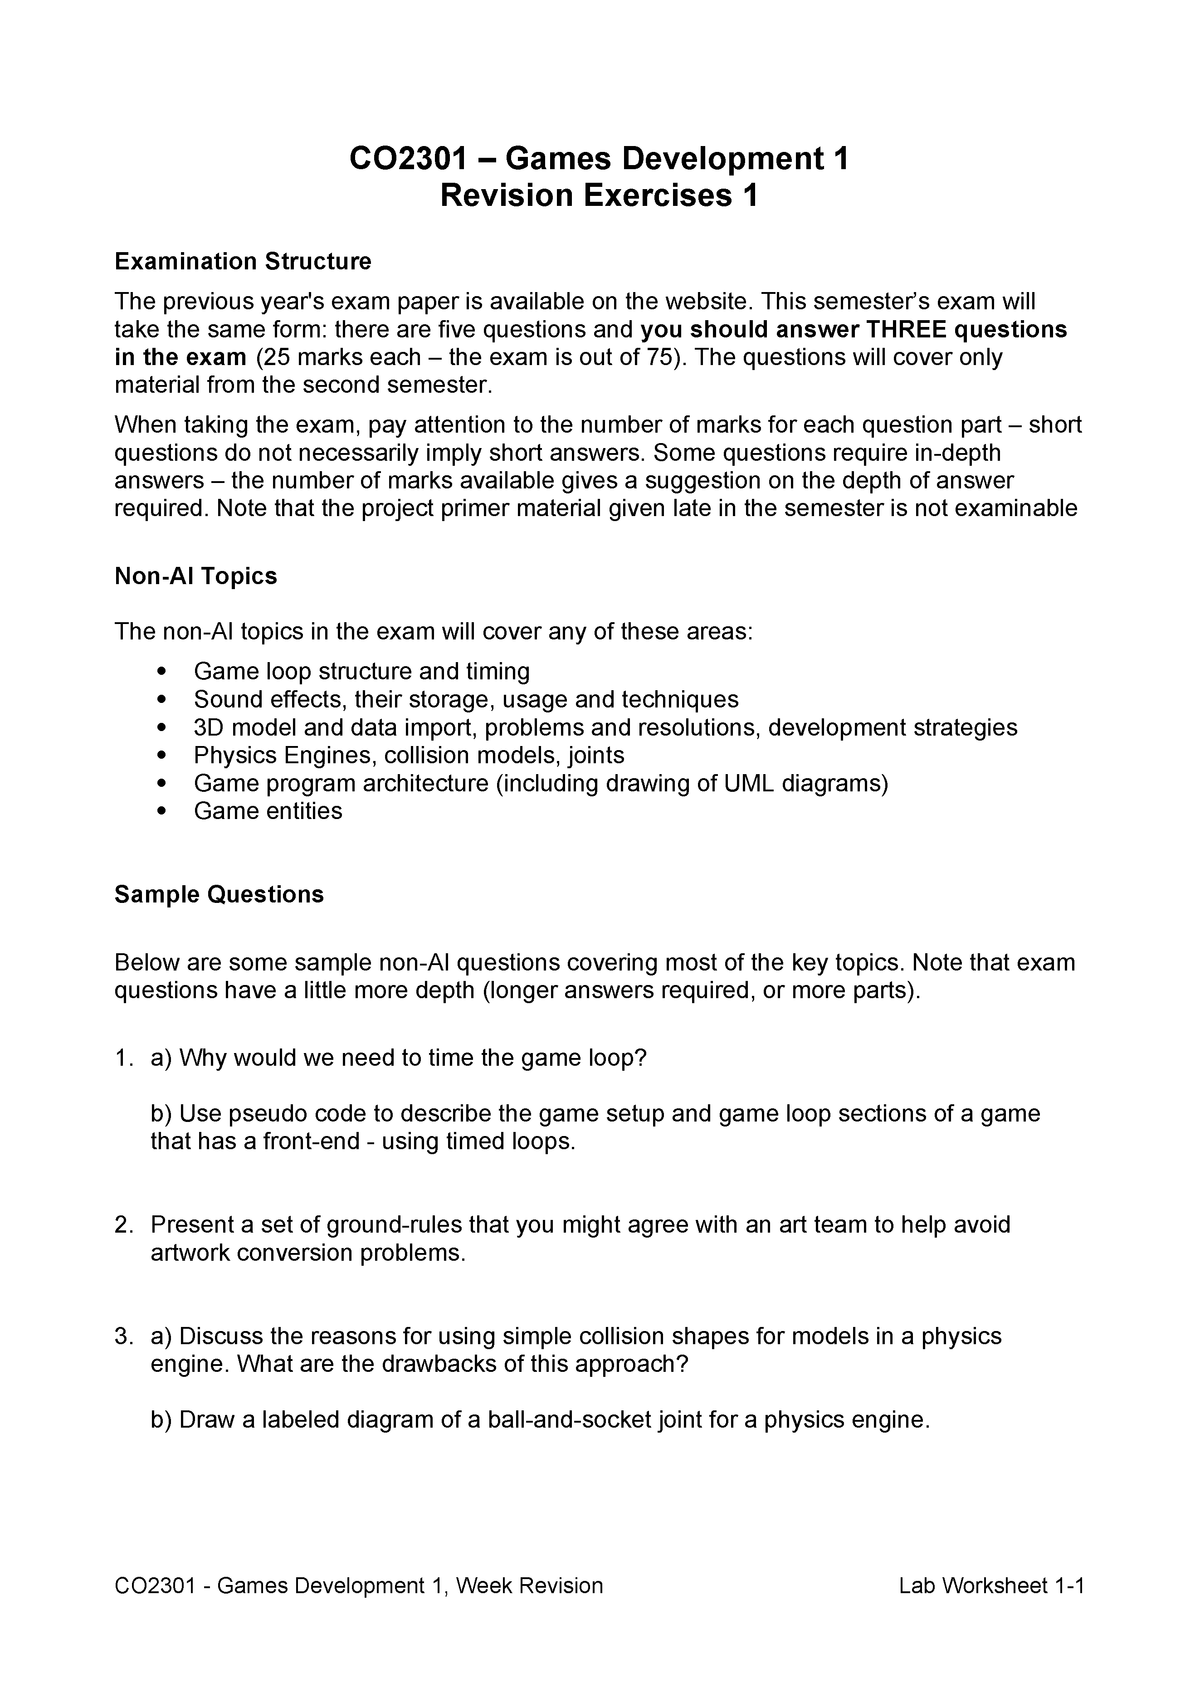 CO2301 24 Lab Worksheet 2008 - Revision Exercises - CO2301